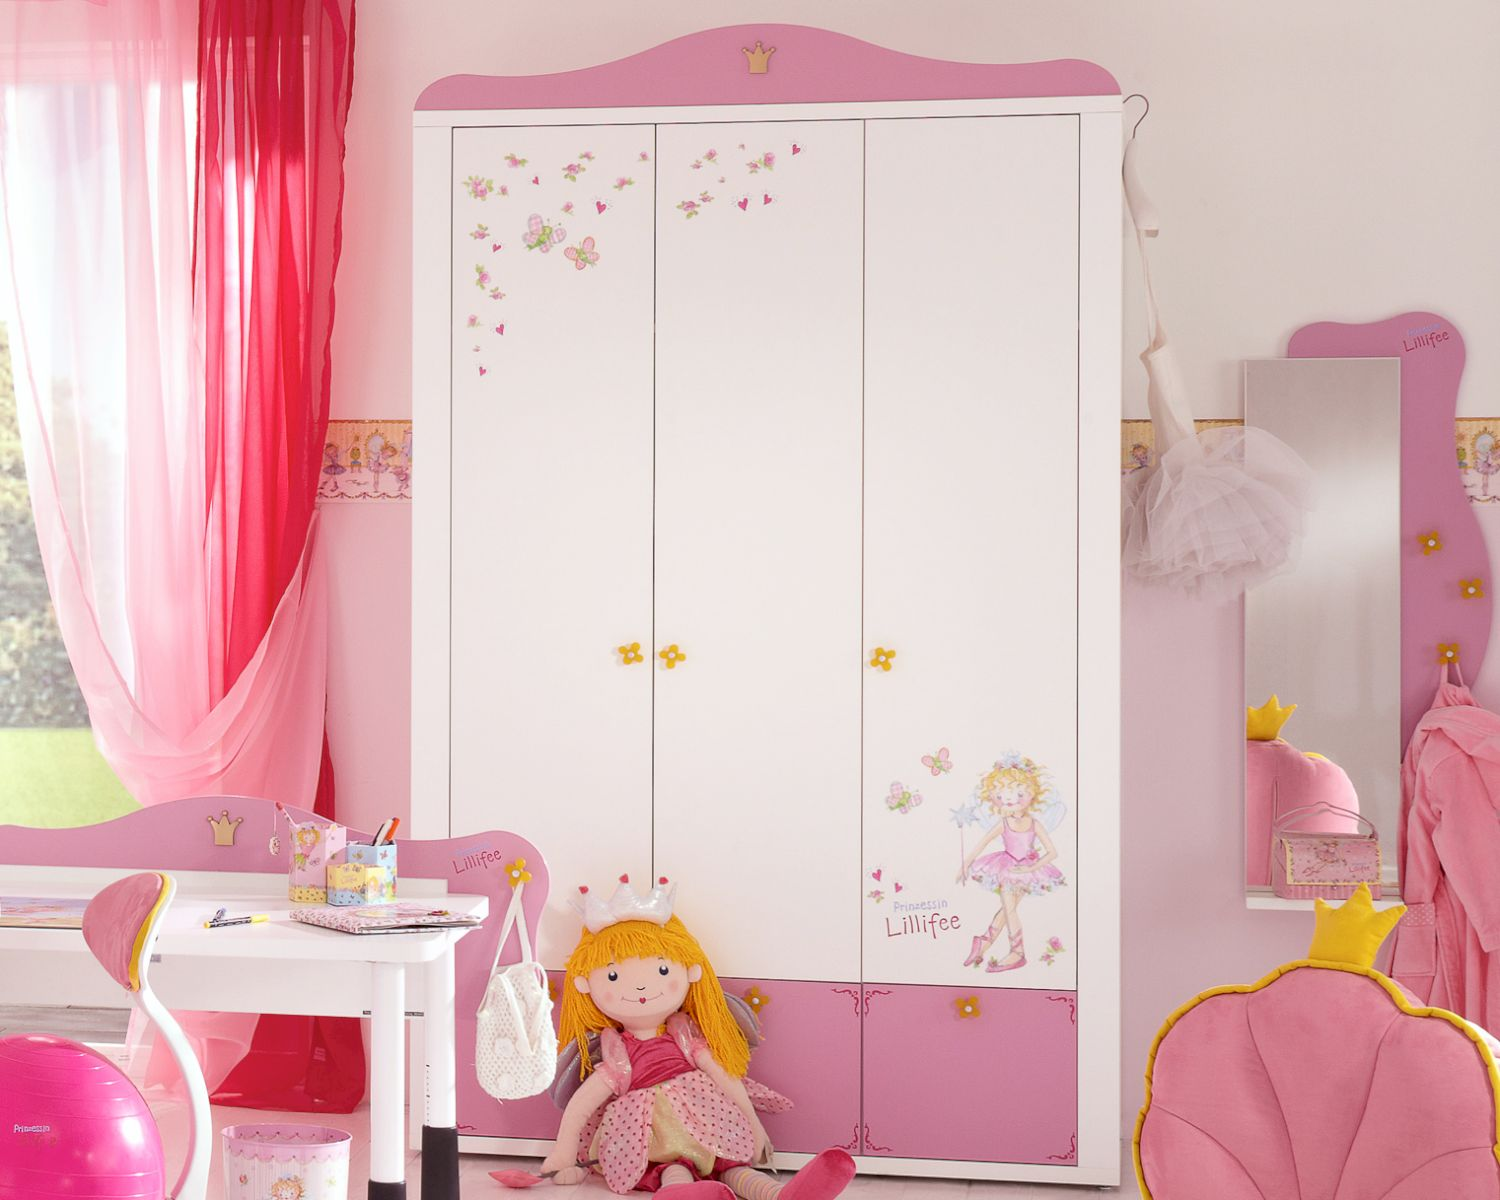 prinzessin lillifee kinderzimmer kleiderschrank. Black Bedroom Furniture Sets. Home Design Ideas